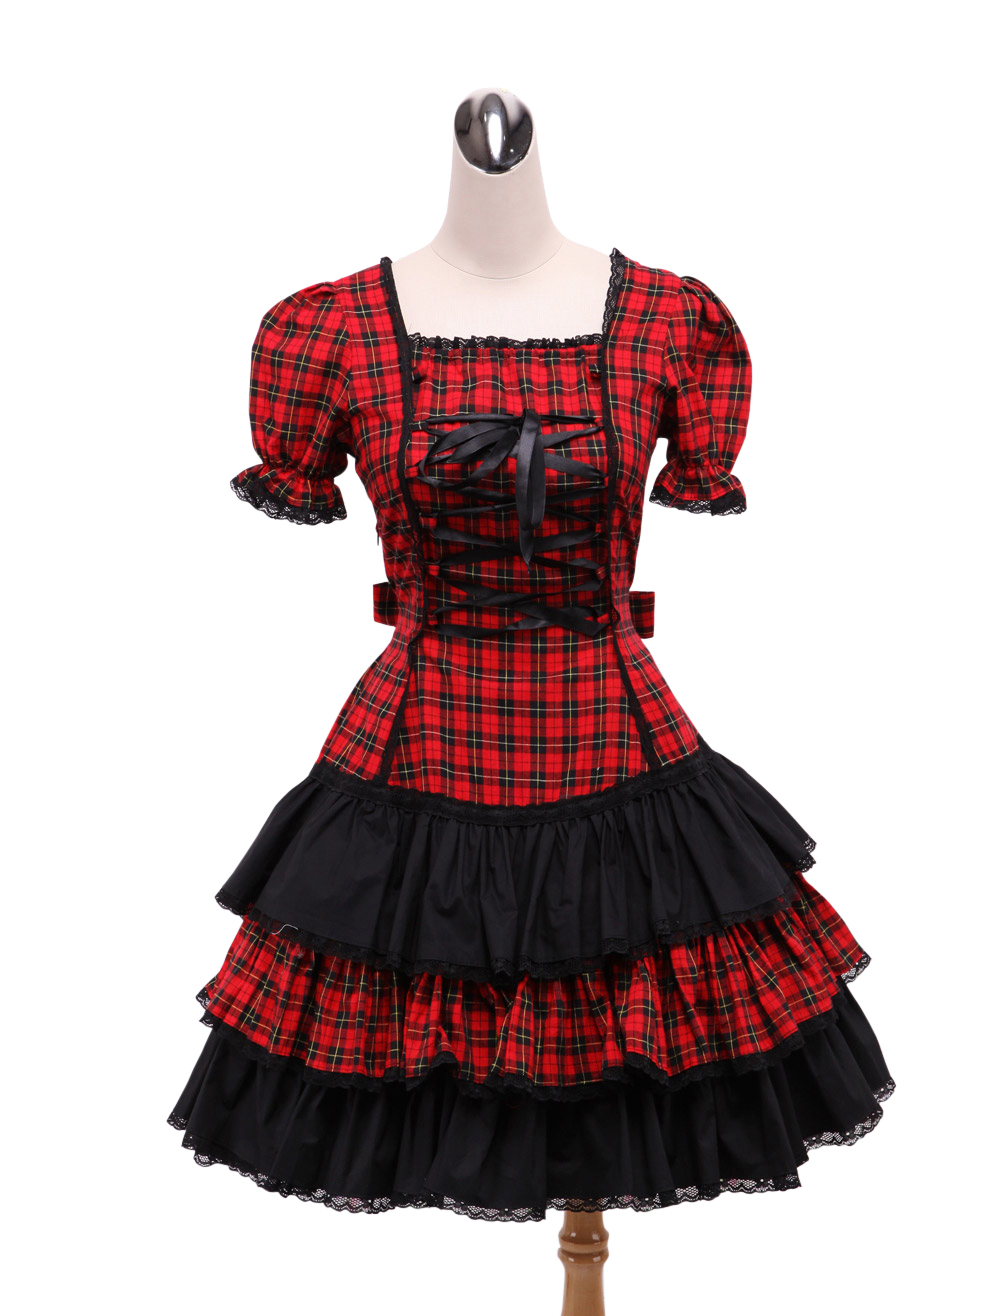 Primary image for ZeroMart Red and Black Plaid Ruffles Vintage Gothic Sweet Lolita Dress